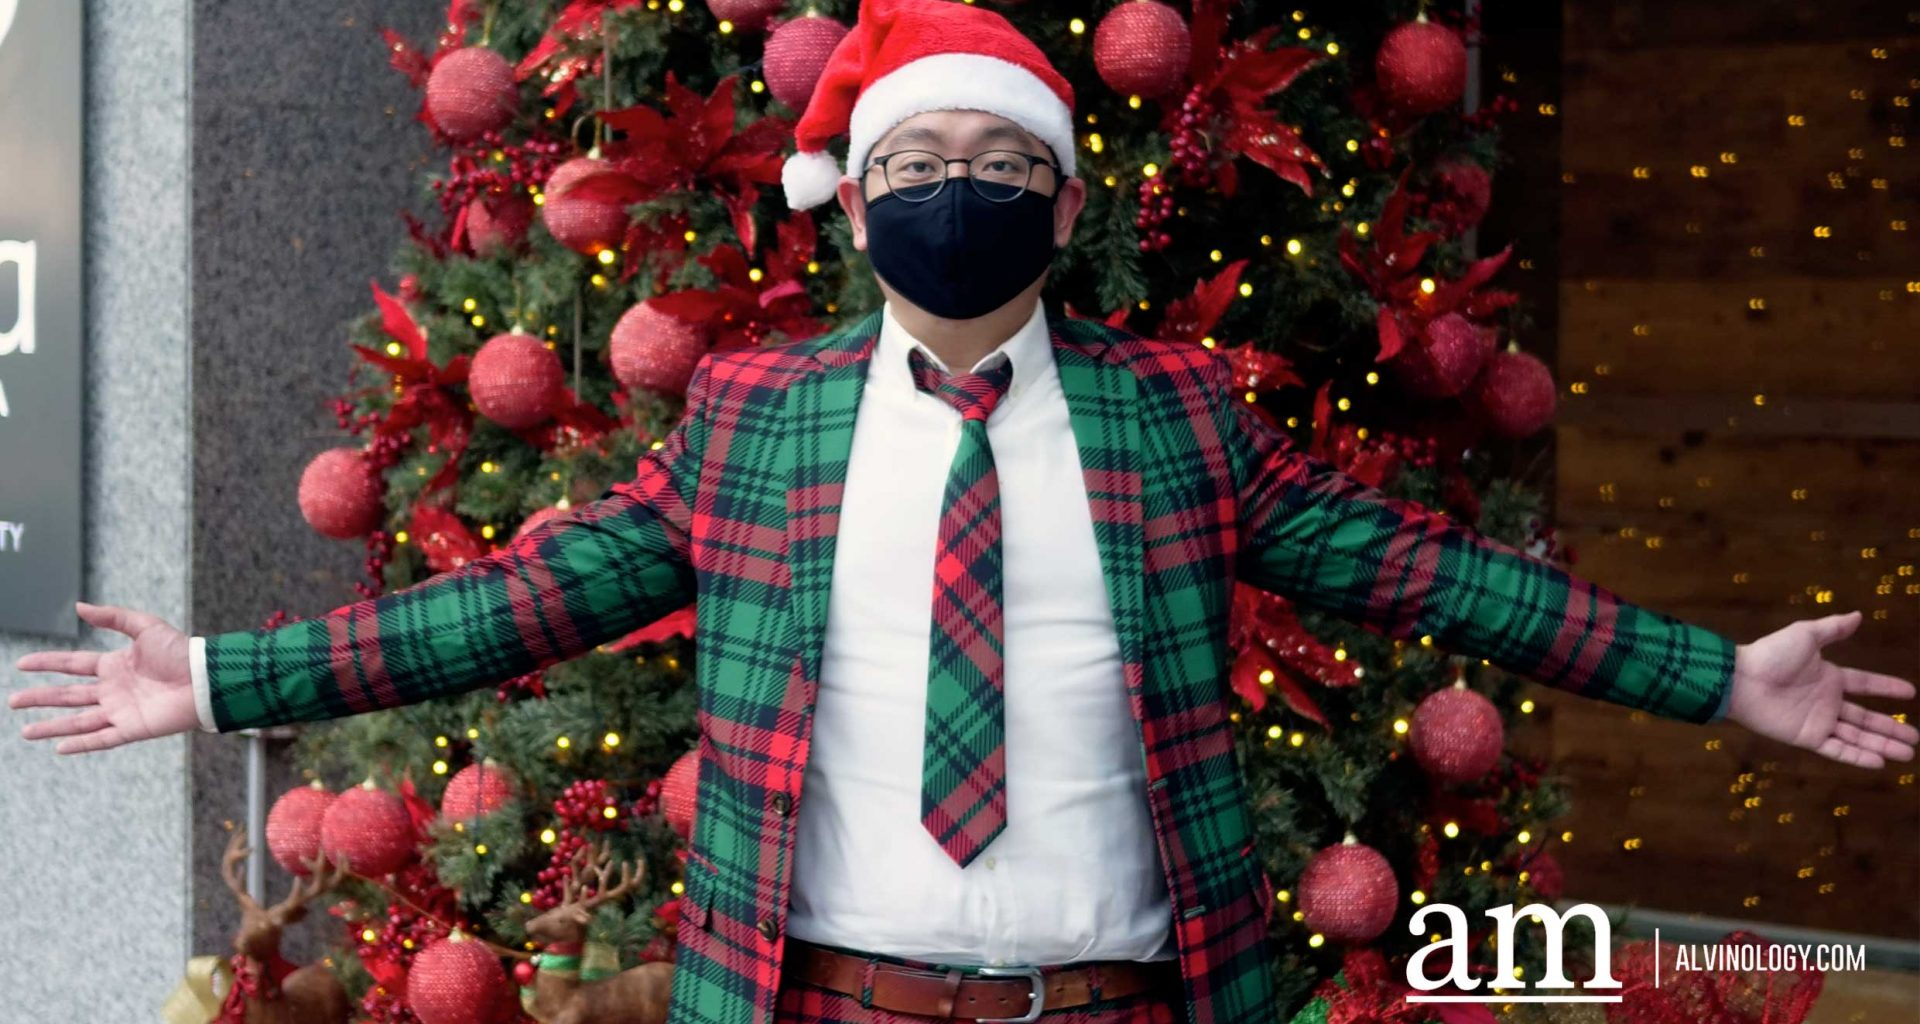 Win the Holidays with Shinesty - Stay Weird and Shine on! - Alvinology